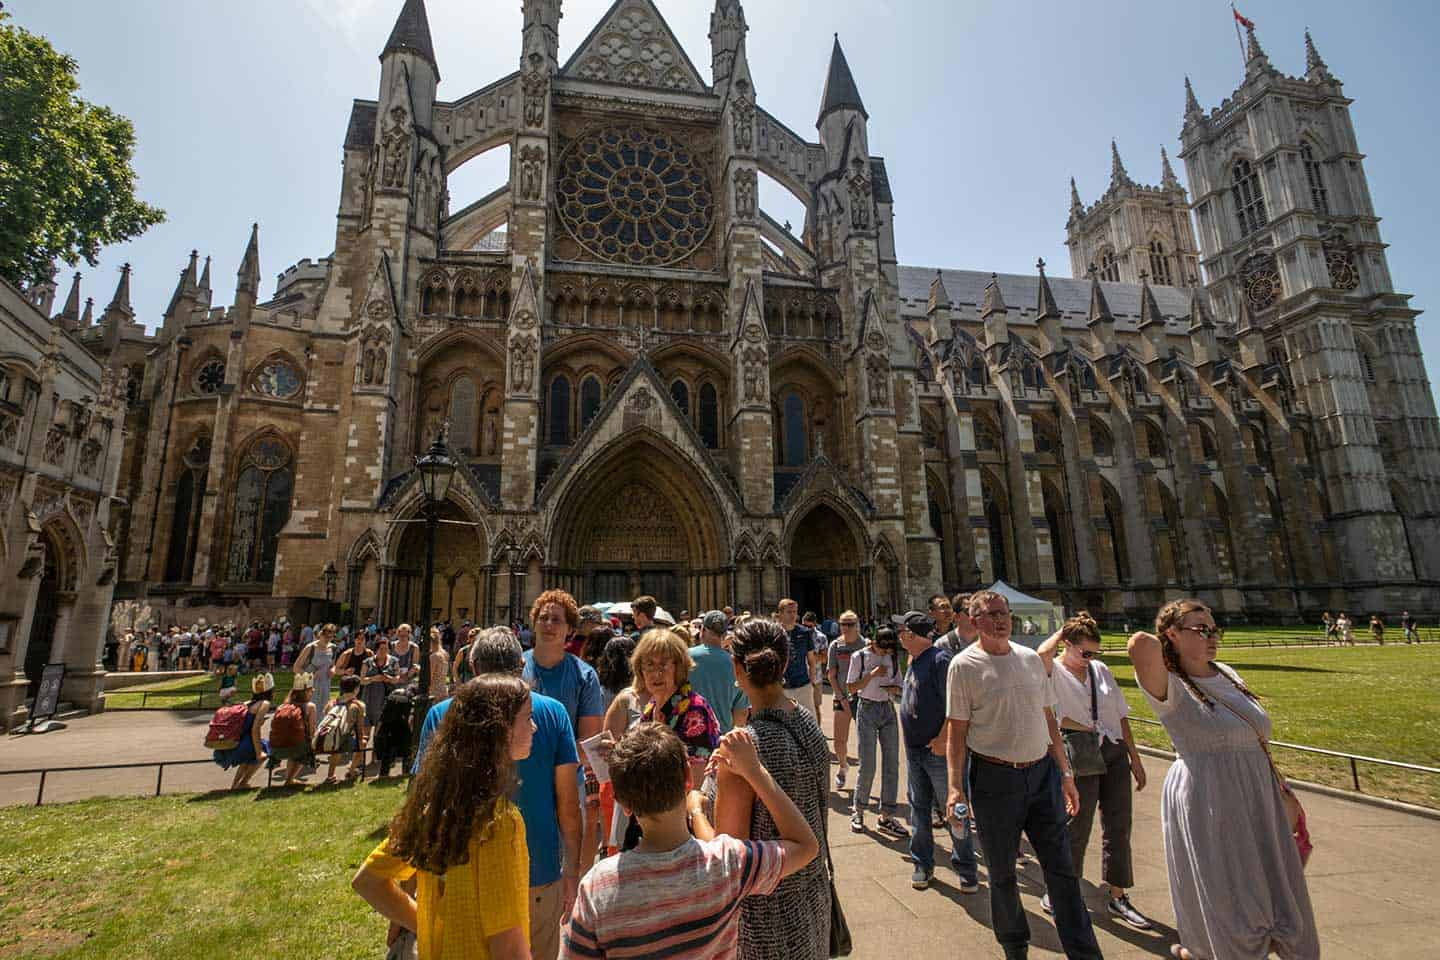 Image of long queues of visitors outside Westminster Abbey, London